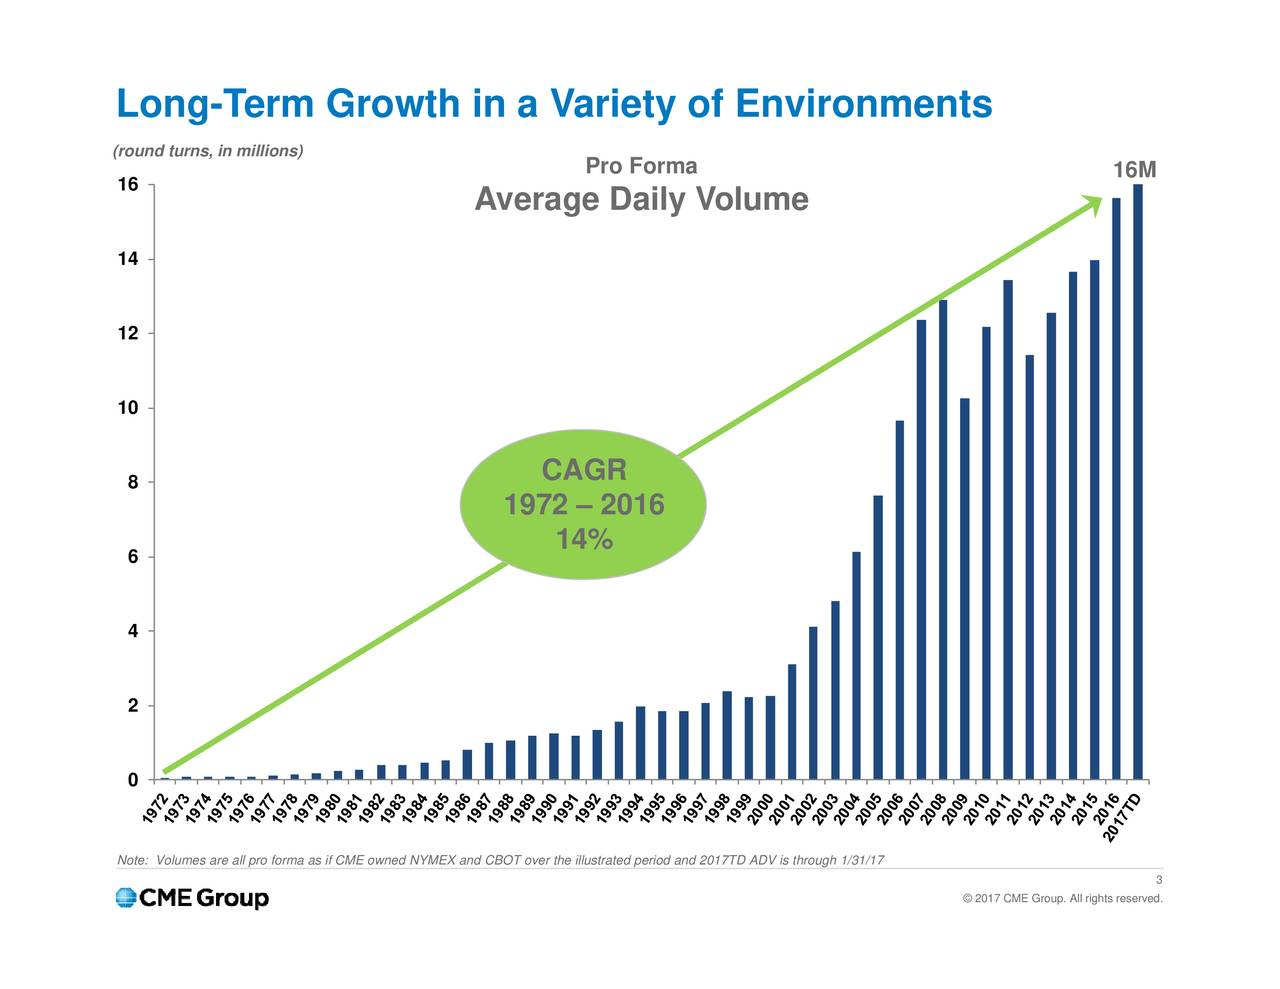 16M 2017 CME Group. All rights reserved. Pro Forma CAGR 14% 1972  2016 OT over the illustrated period and 2017TD ADV is through 1/31/17 Average Daily Volume Long(round turns, in millions)of Environments 4 2 0 Note: Volumes are all pro forma as if CME owned NYMEX and CB